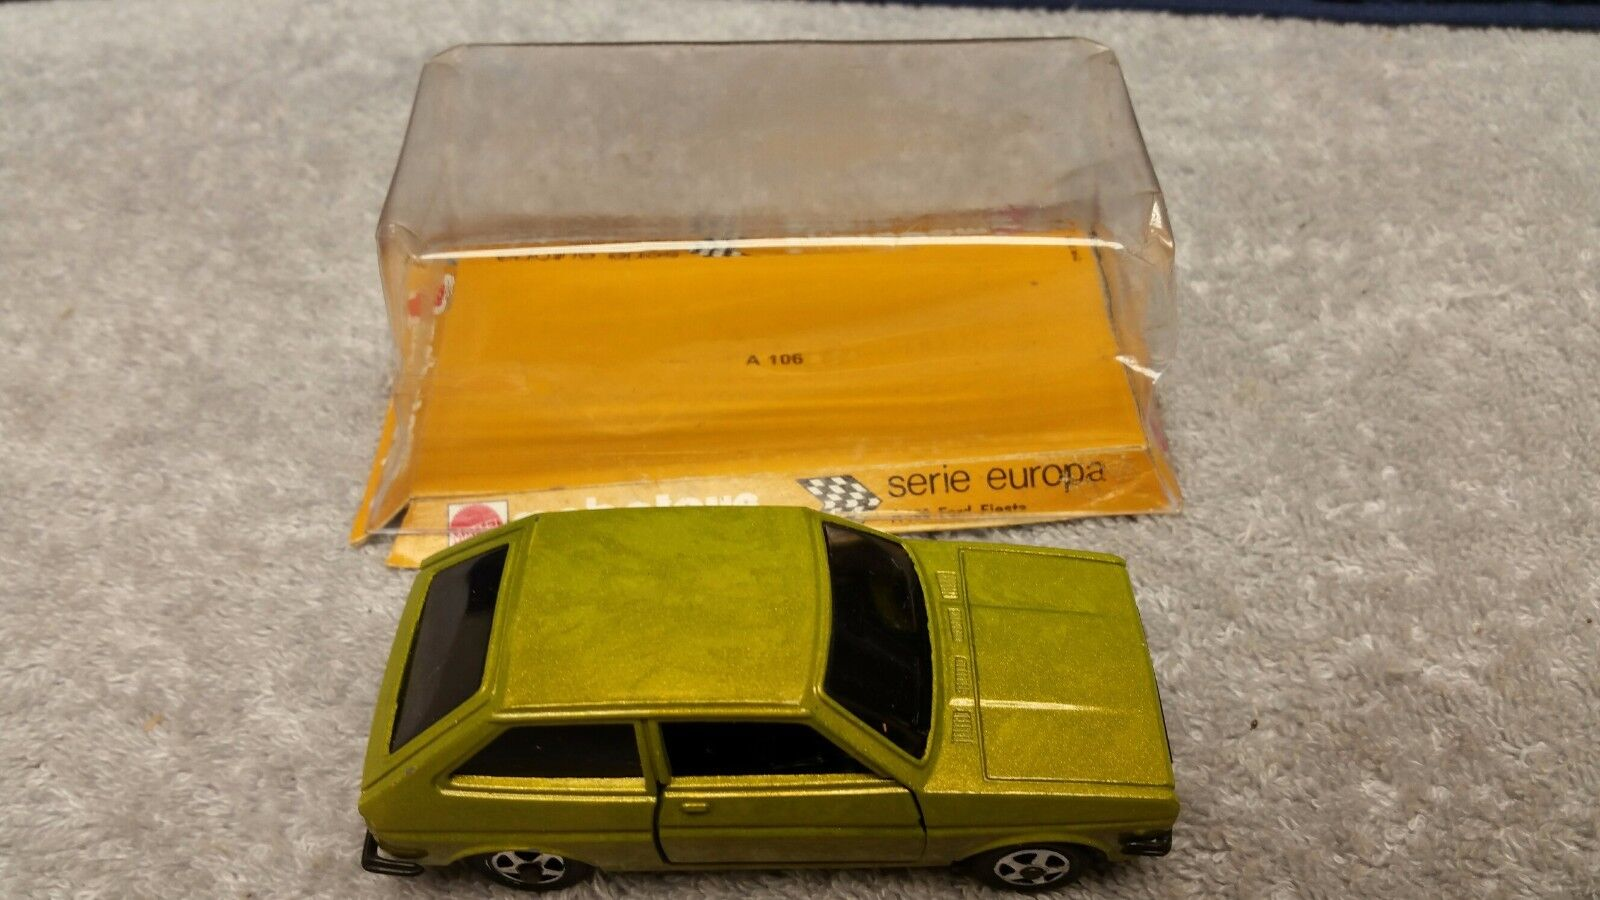 Vintage Mattel Mebetoys Series Europa    A106 Ford Fiesta  in Green Mint Loose bbe139